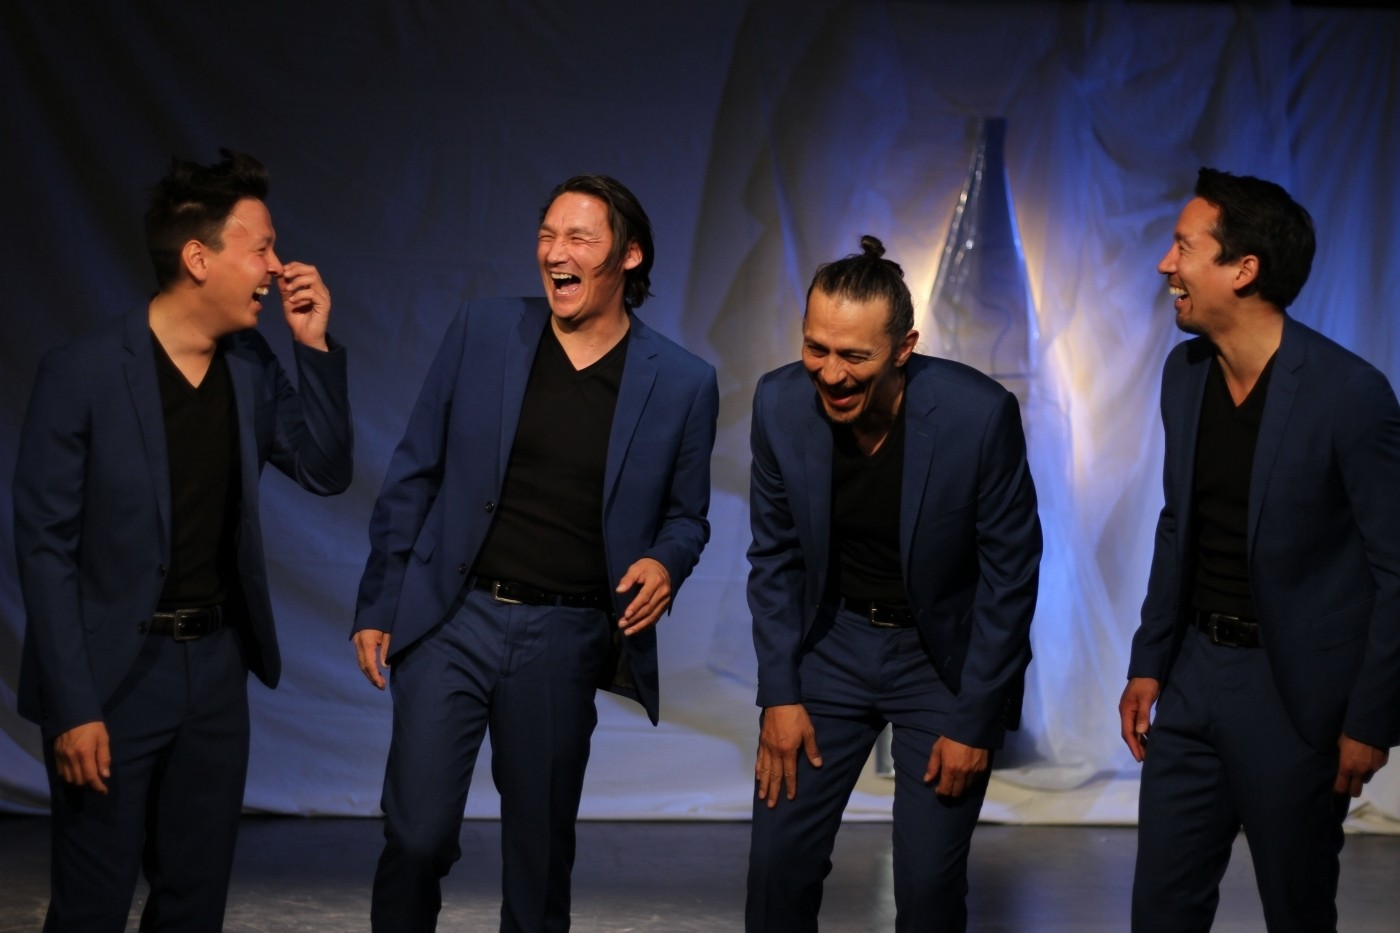 Hans Henrik Suersaq, Klaus Geisler, Kristian Mølgaard and Miki Jacobsen in Angutivik from The National Theatre of Greenland laughing. Photo by Gerth Lyberth, Visit Greenland